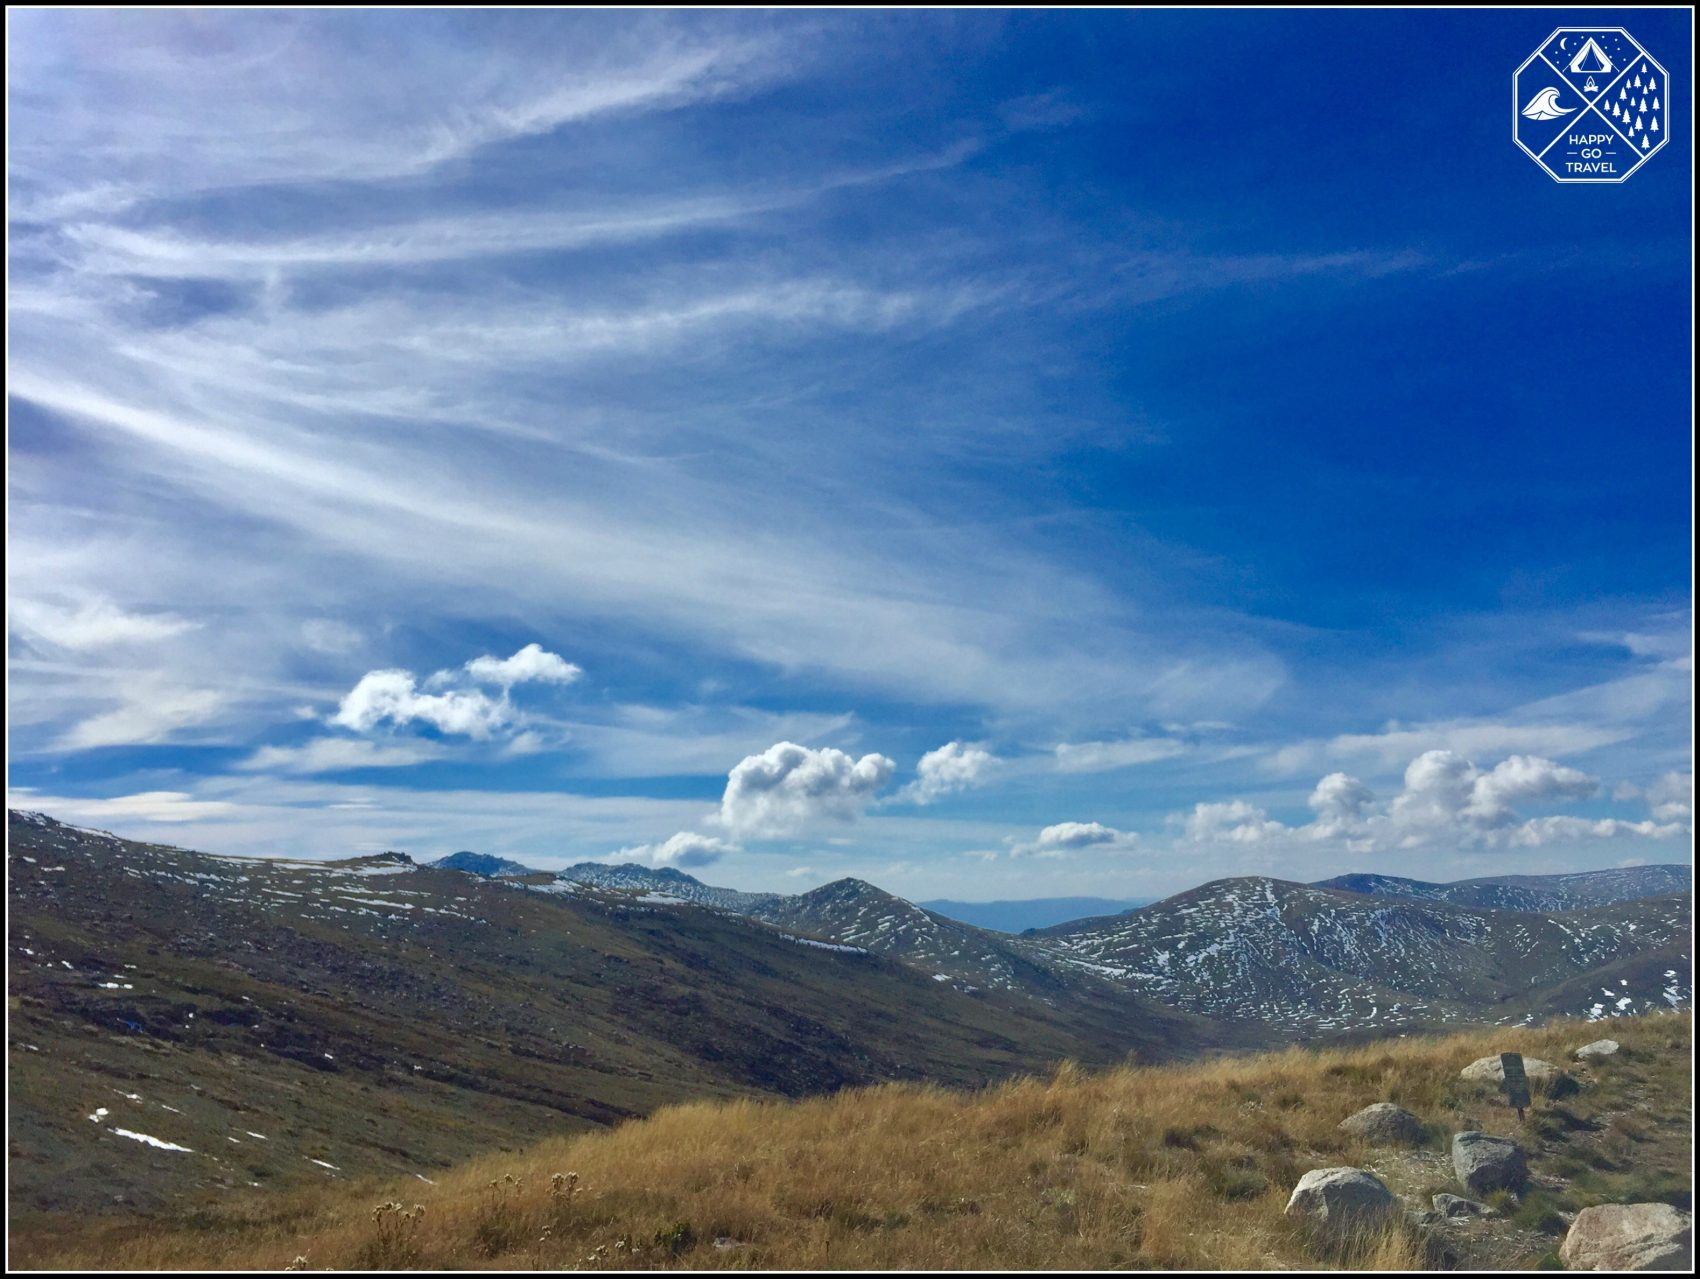 Hiking Mount Kosciuszko | the snow covered peaks of the Australian Alps Snowy Mountains